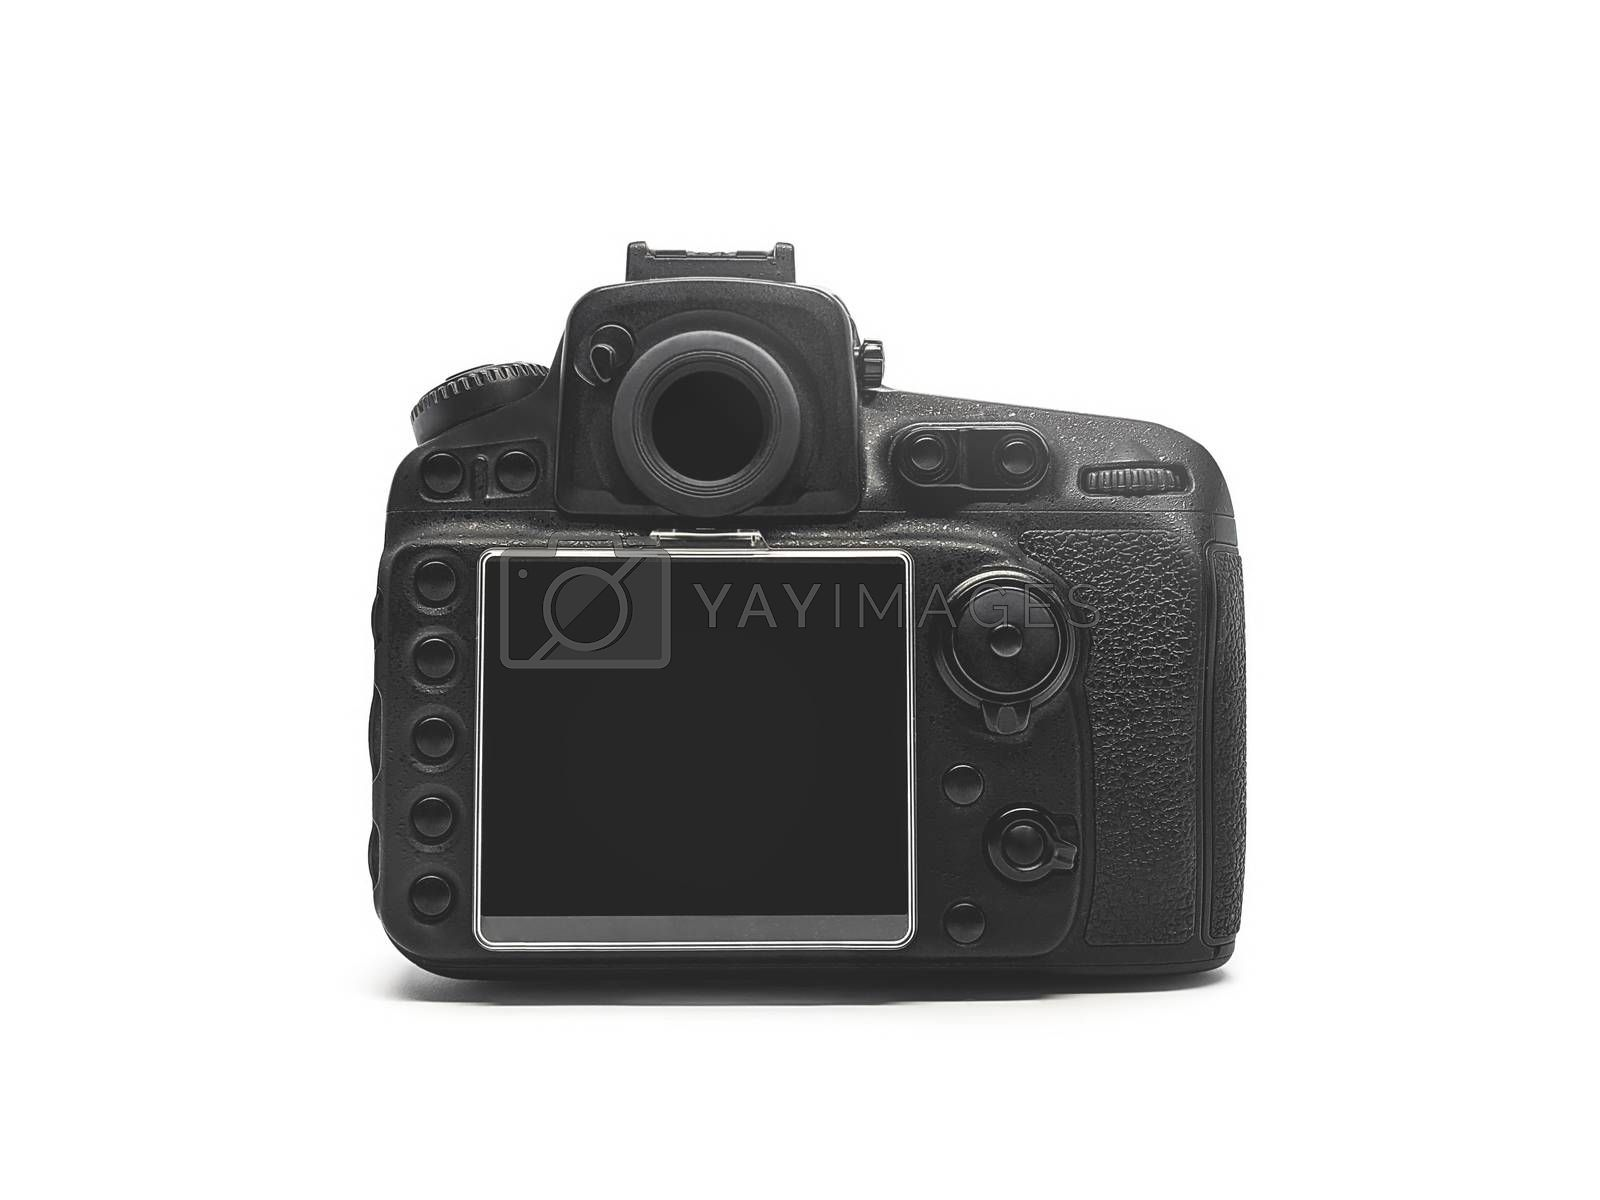 Rear view of a black digital camera on a white background.